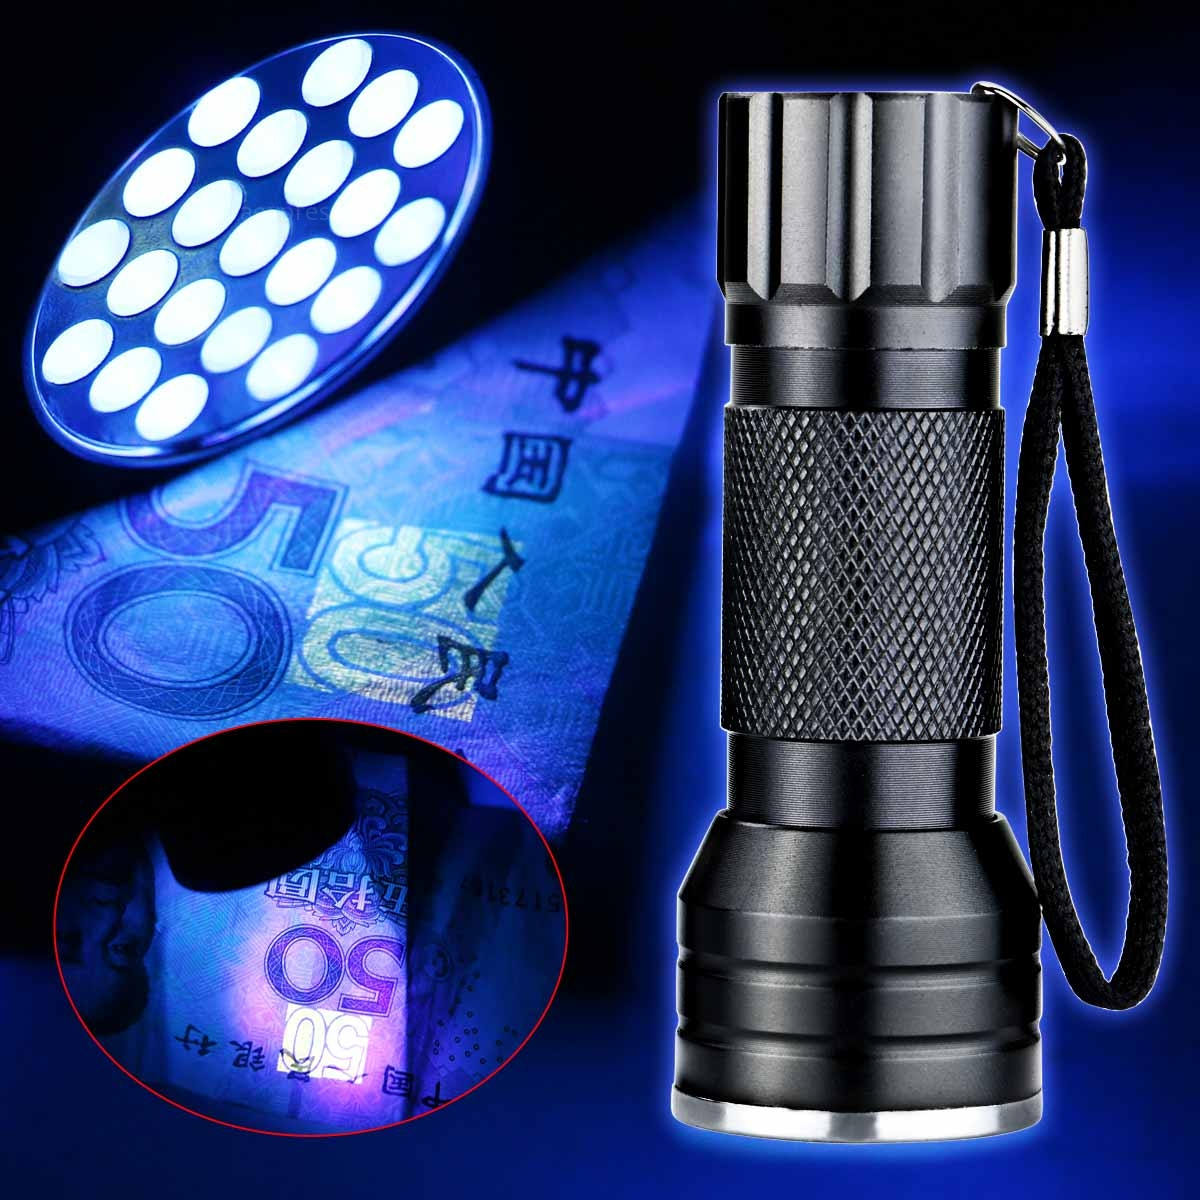 Blacklight Lamp Uv Ultra Violet 21 Led Flashlight Blacklight Light 395nm